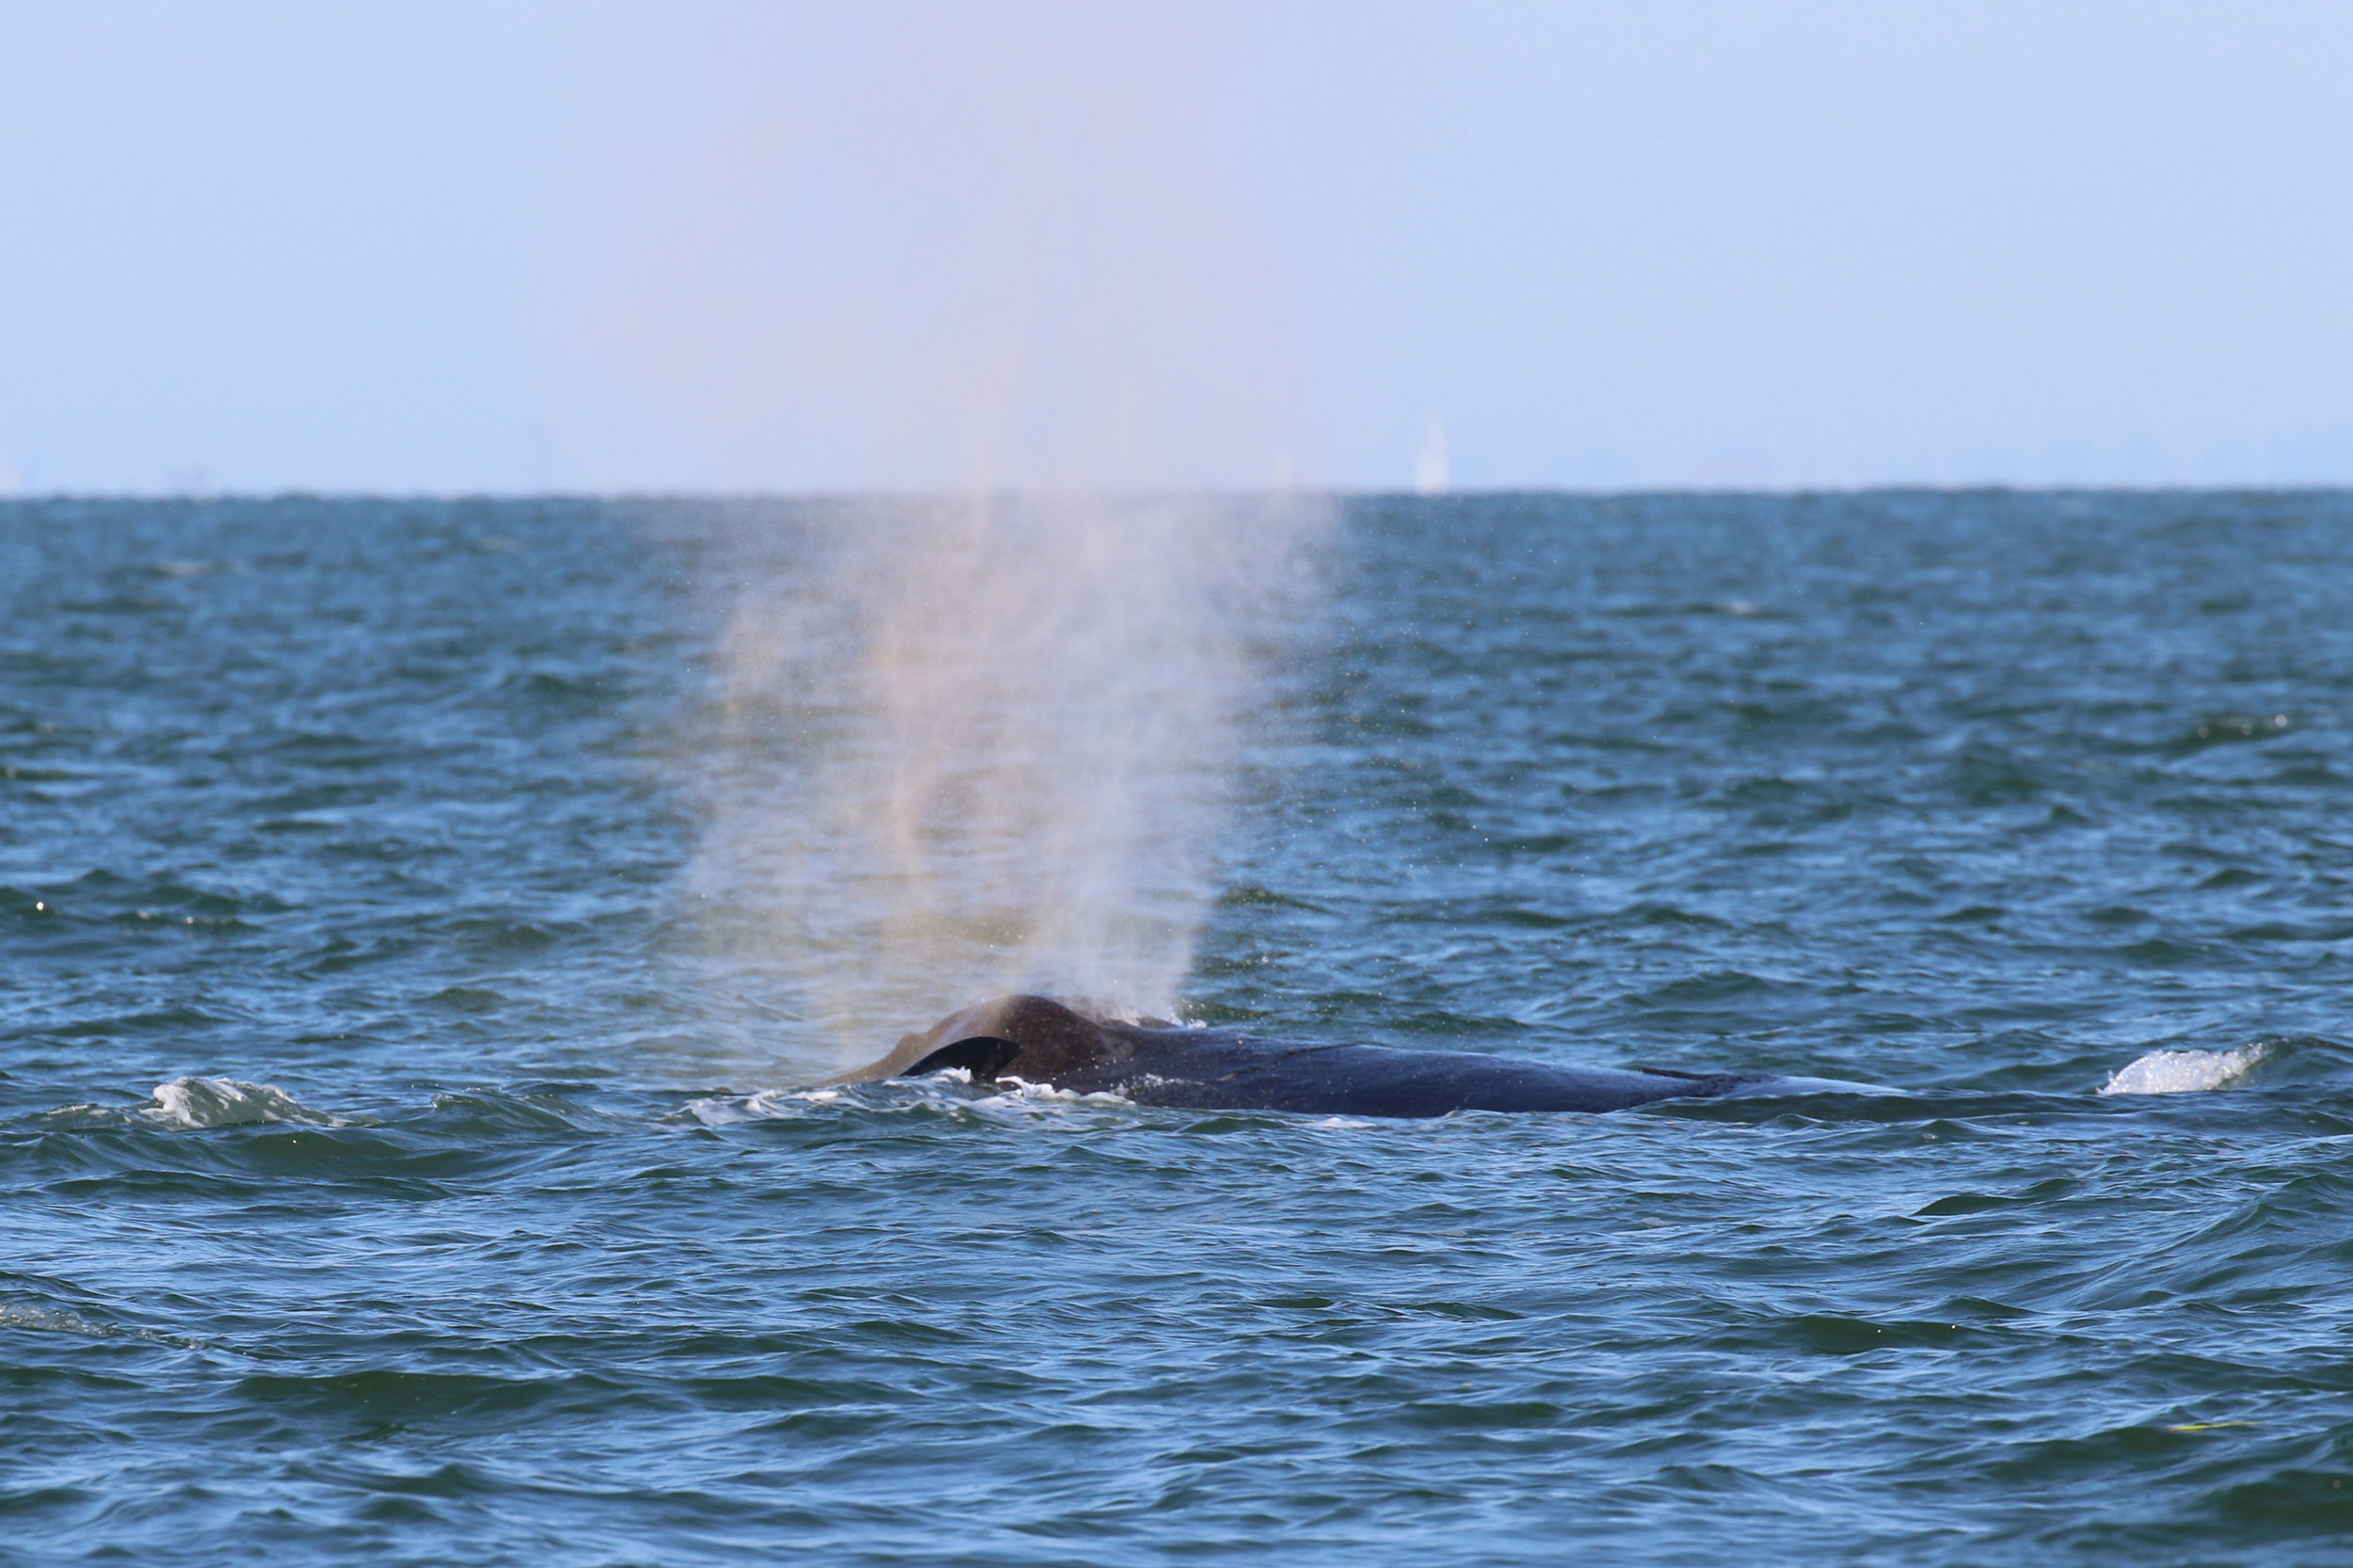 Fire breathing humpback alert! This blow caught the sun just right to make it a reddish-orange. Photo by Natalie Reichenbacher (3:30).